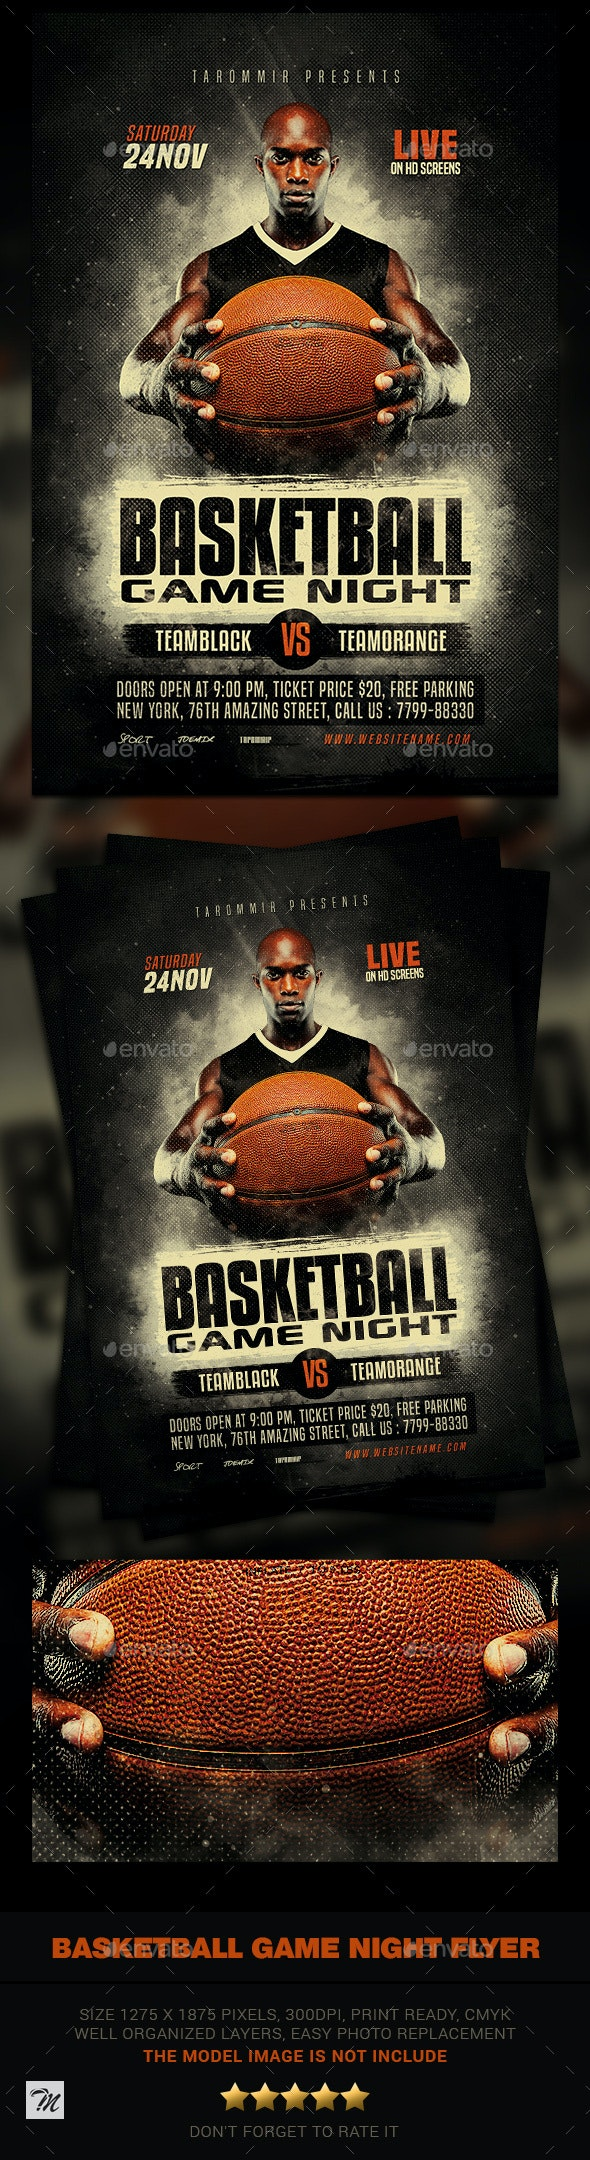 Basketball Game Night Flyer - Sports Events